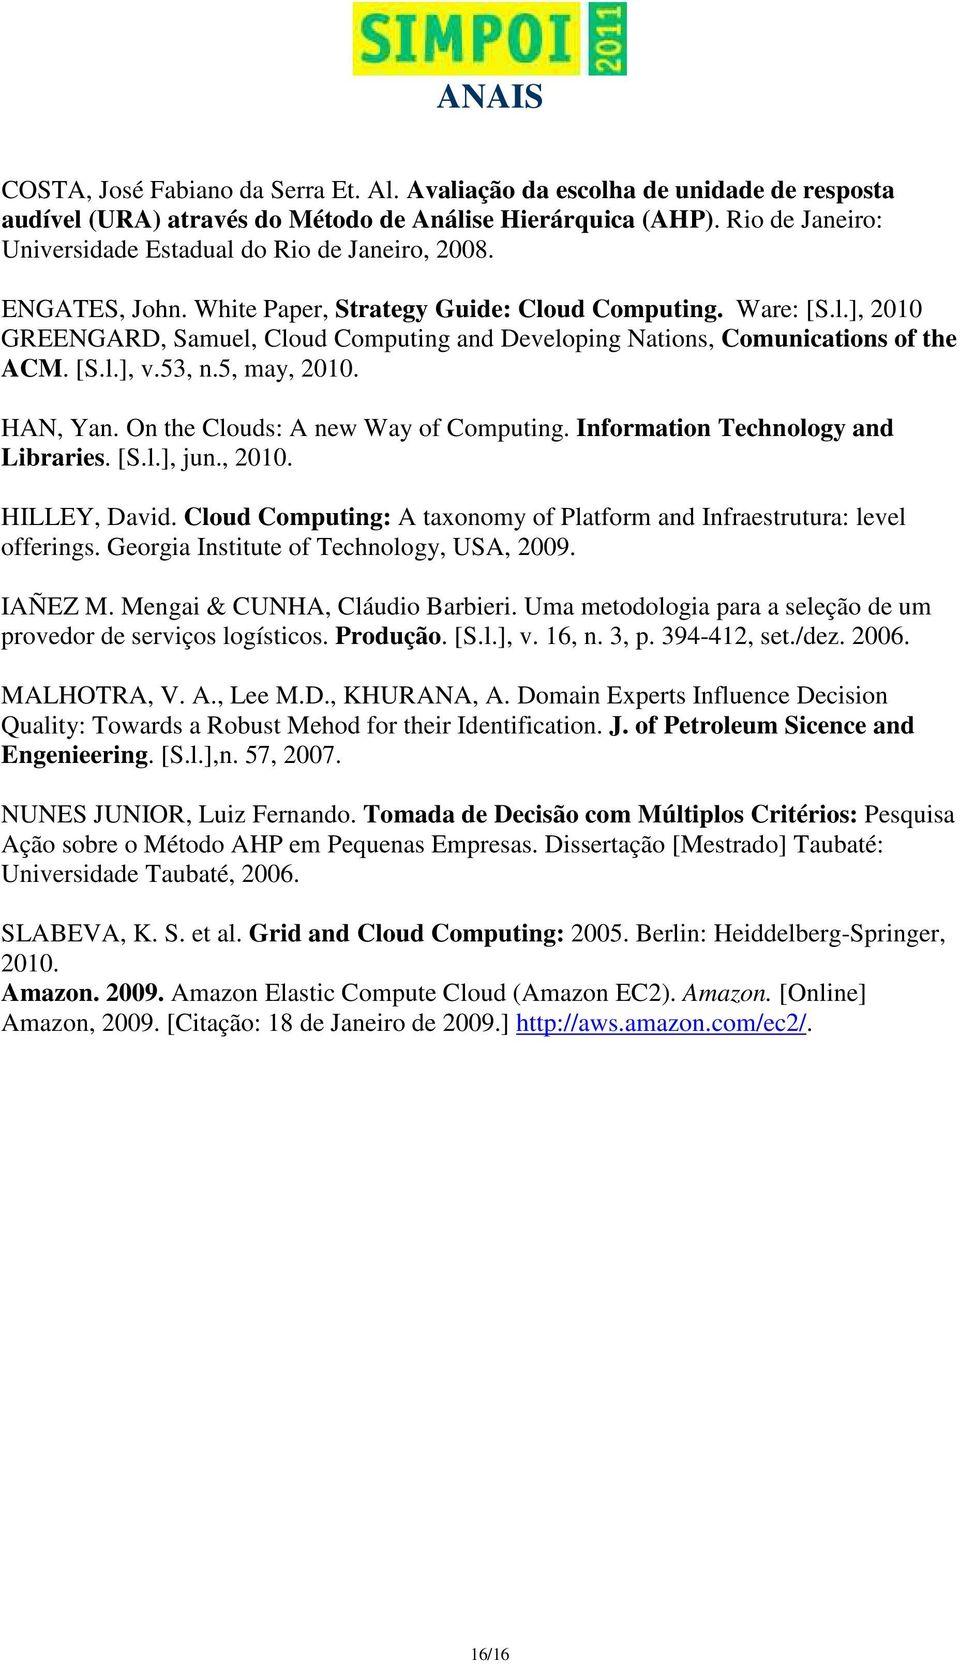 [S.l.], v.53, n.5, may, 2010. HAN, Yan. On the Clouds: A new Way of Computing. Information Technology and Libraries. [S.l.], jun., 2010. HILLEY, David.